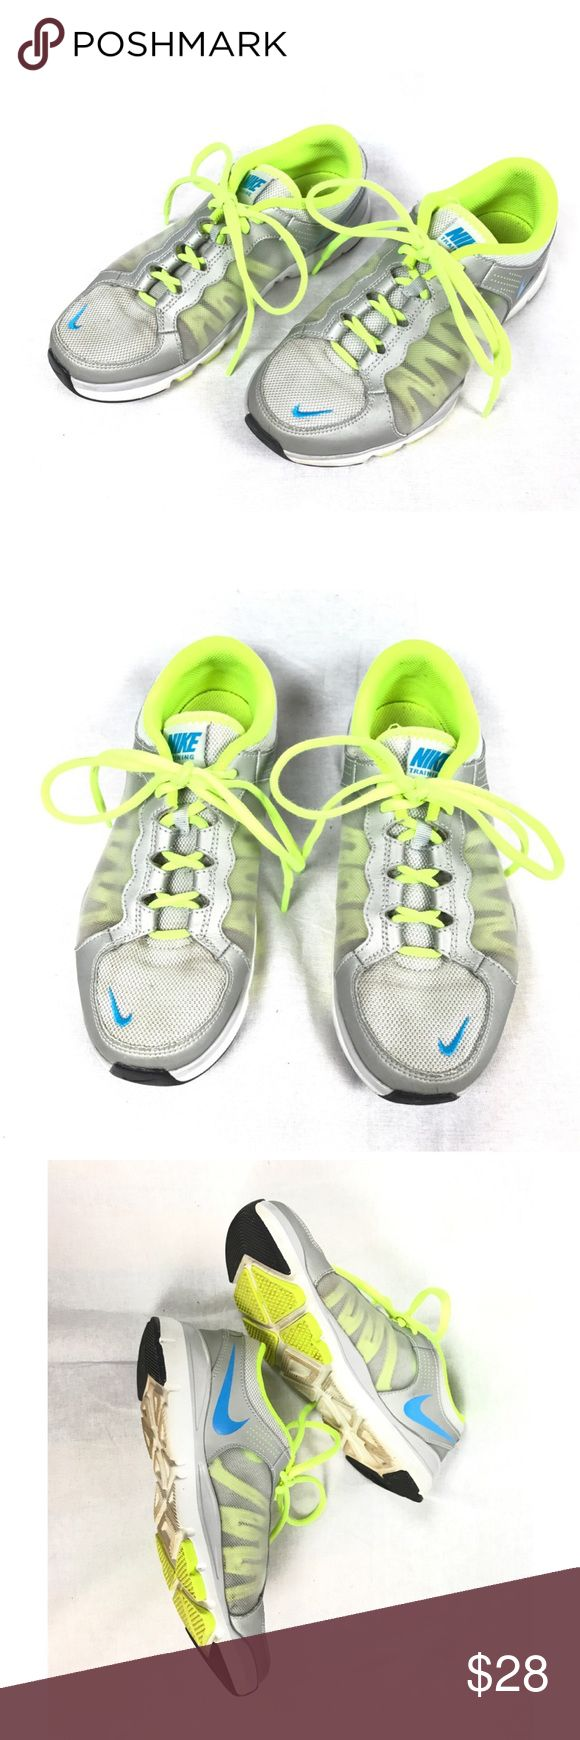 Women's Nike Trainers Size 6.5. Light gray with blue and yellow accents. Some dirt, but only worn outdoors a few times. Great condition. Nike Shoes Sneakers